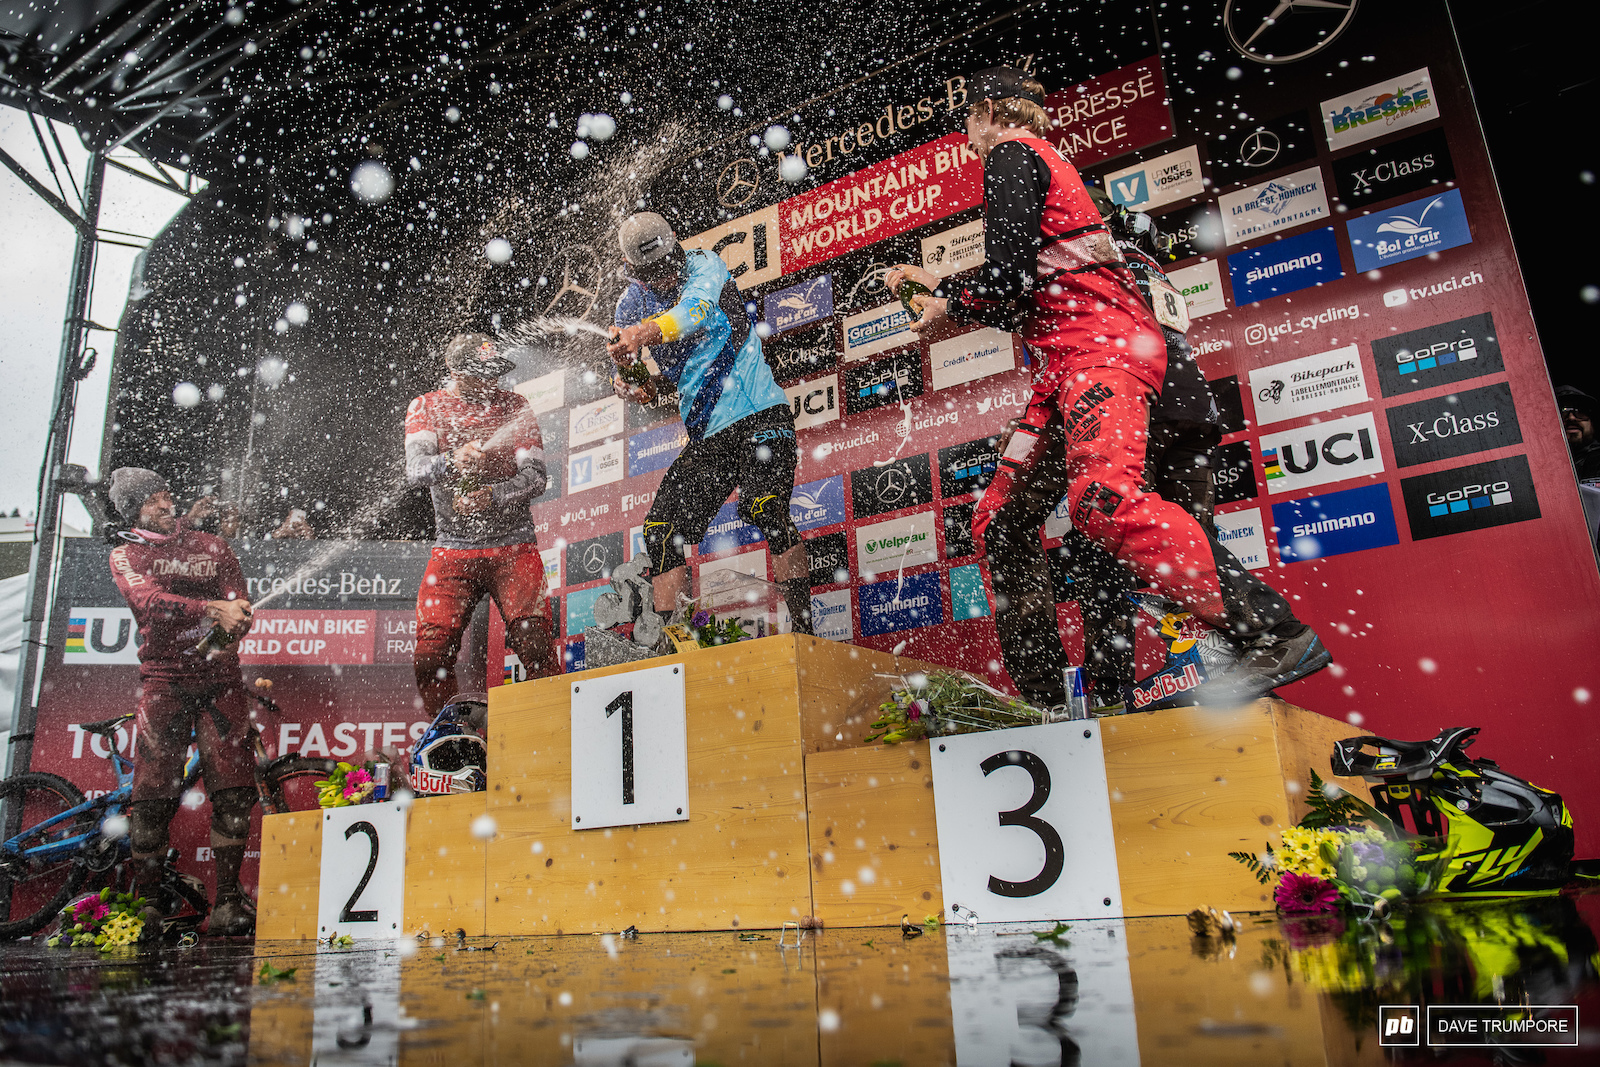 The hardest rain of the day fell on Martin Maes in the form of champagne from atop the podium.